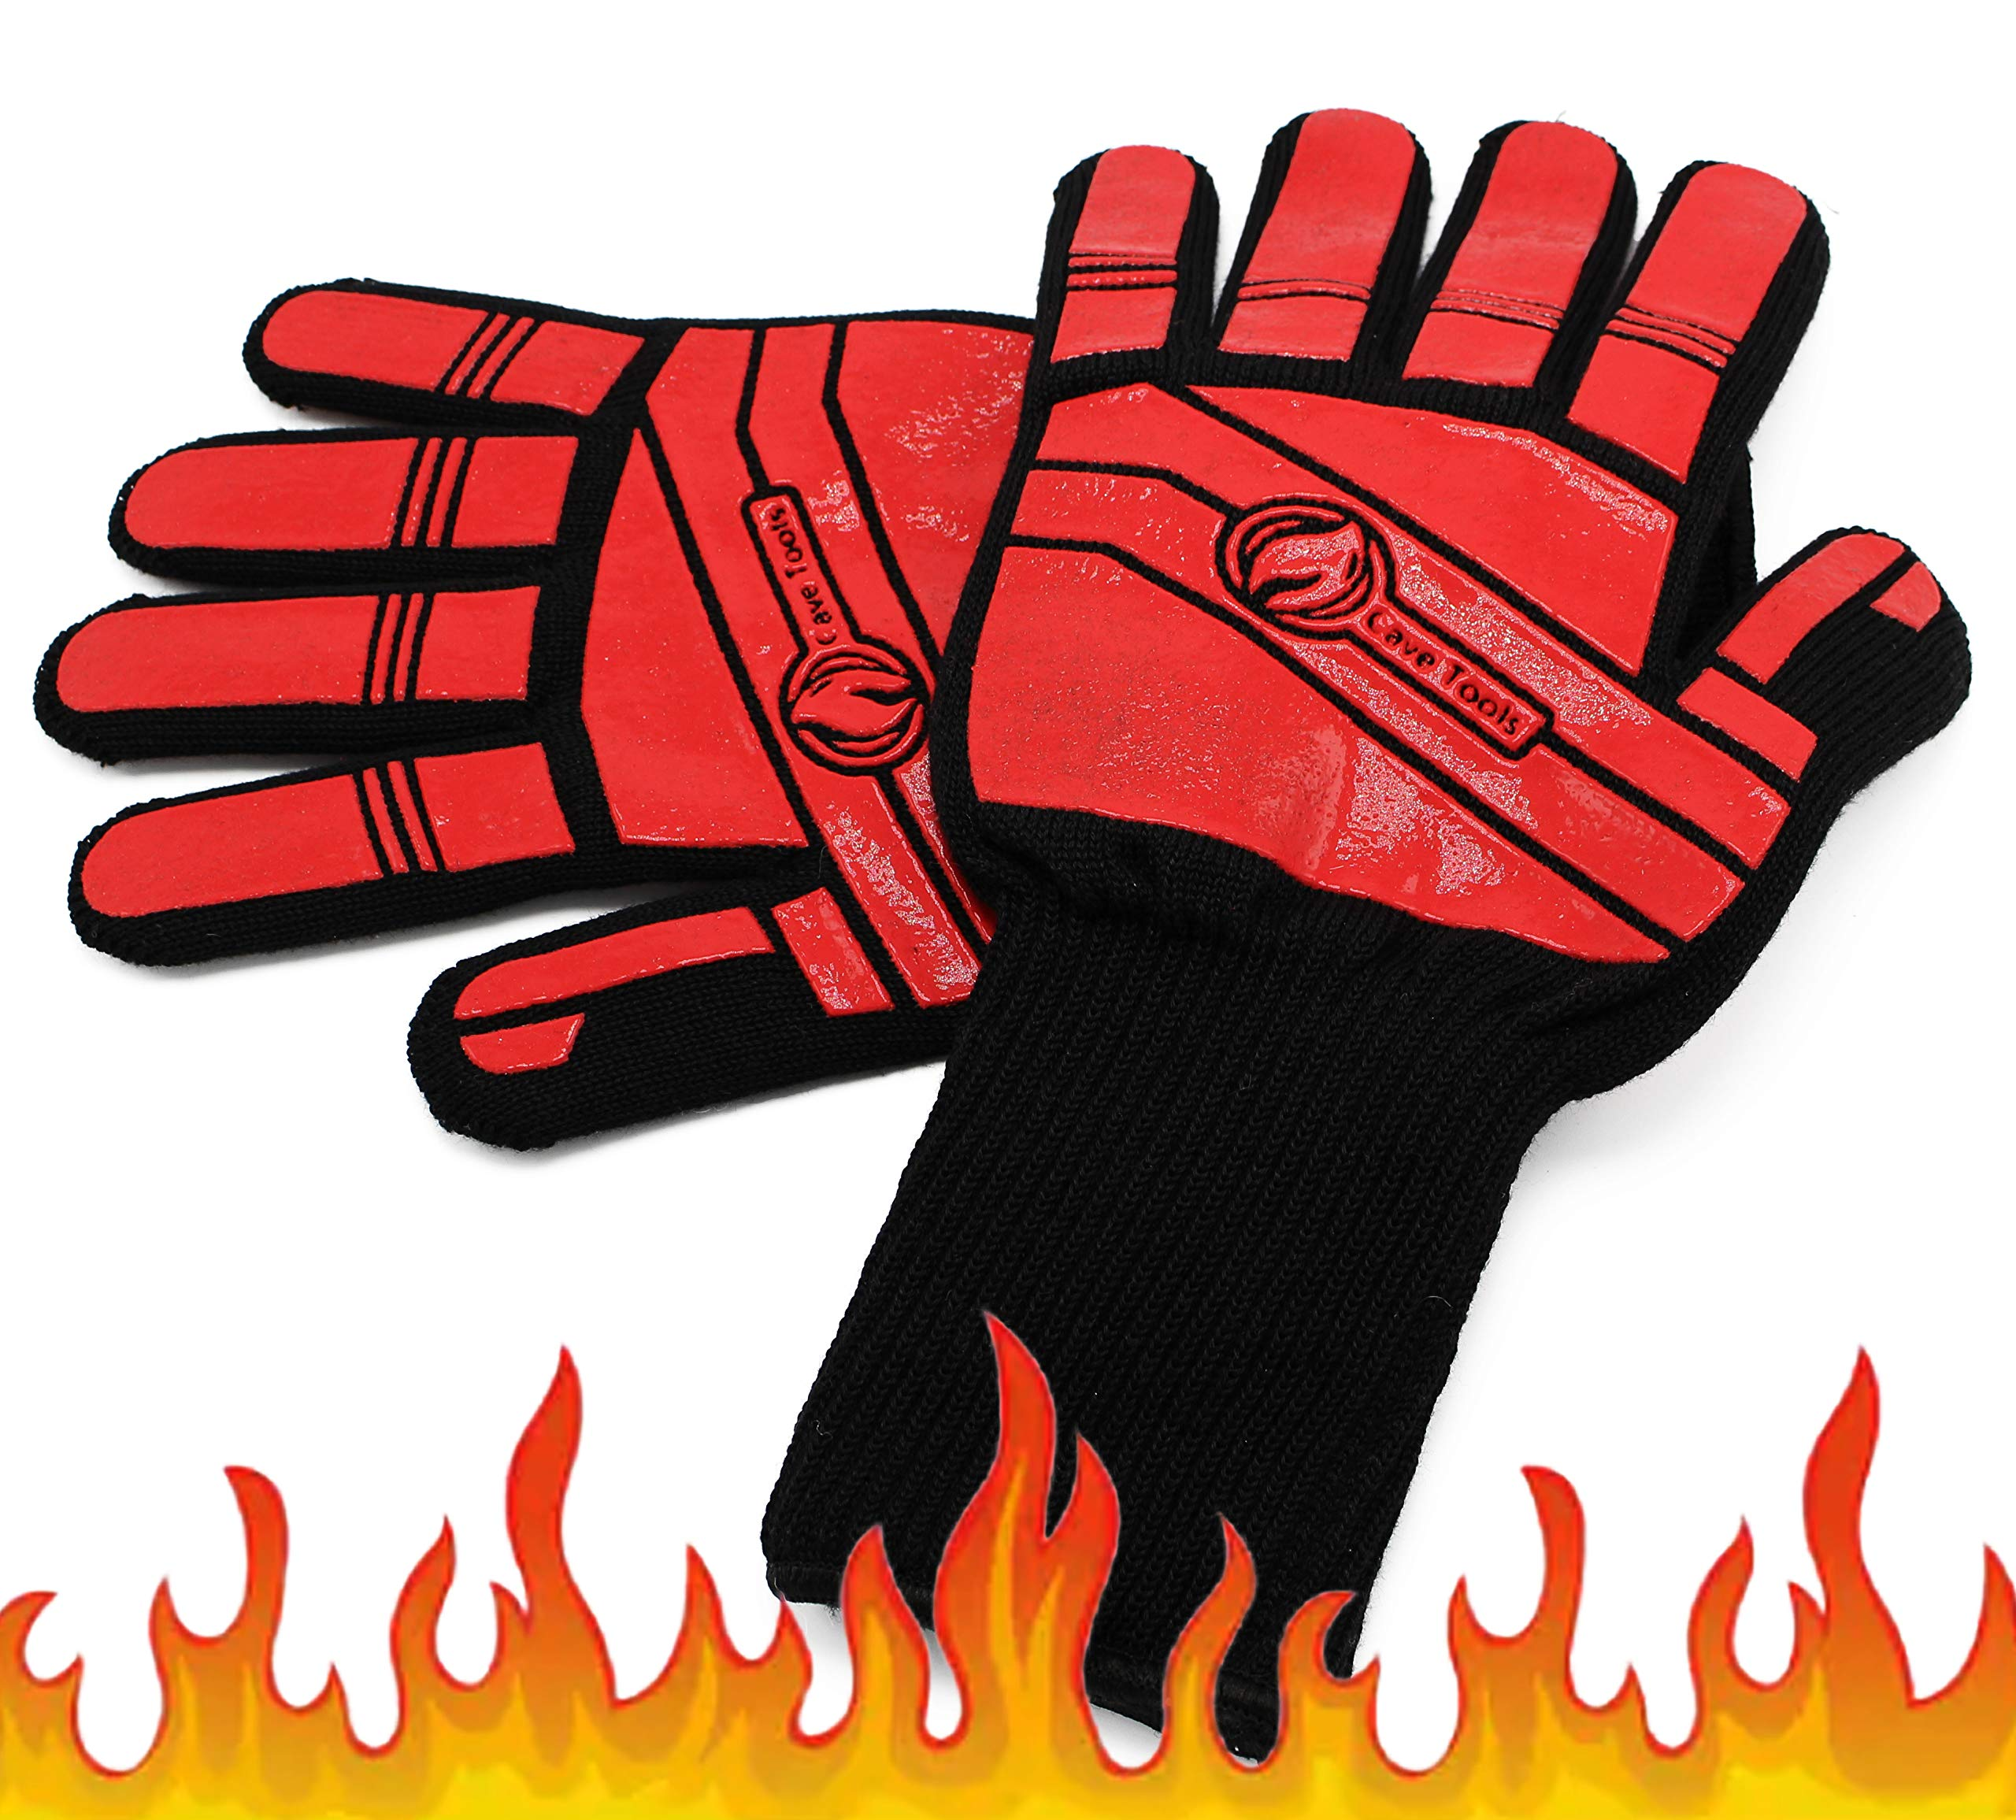 Cave Tools BBQ Glove Oven Mitts - Max Heat Resistant Grill & Cooking Pot Holders Set with Silicone & Aramid Kevlar - Use by Barbecue Smoker Fire or Hot Baking in Kitchen - Grilling Accessories by Cave Tools